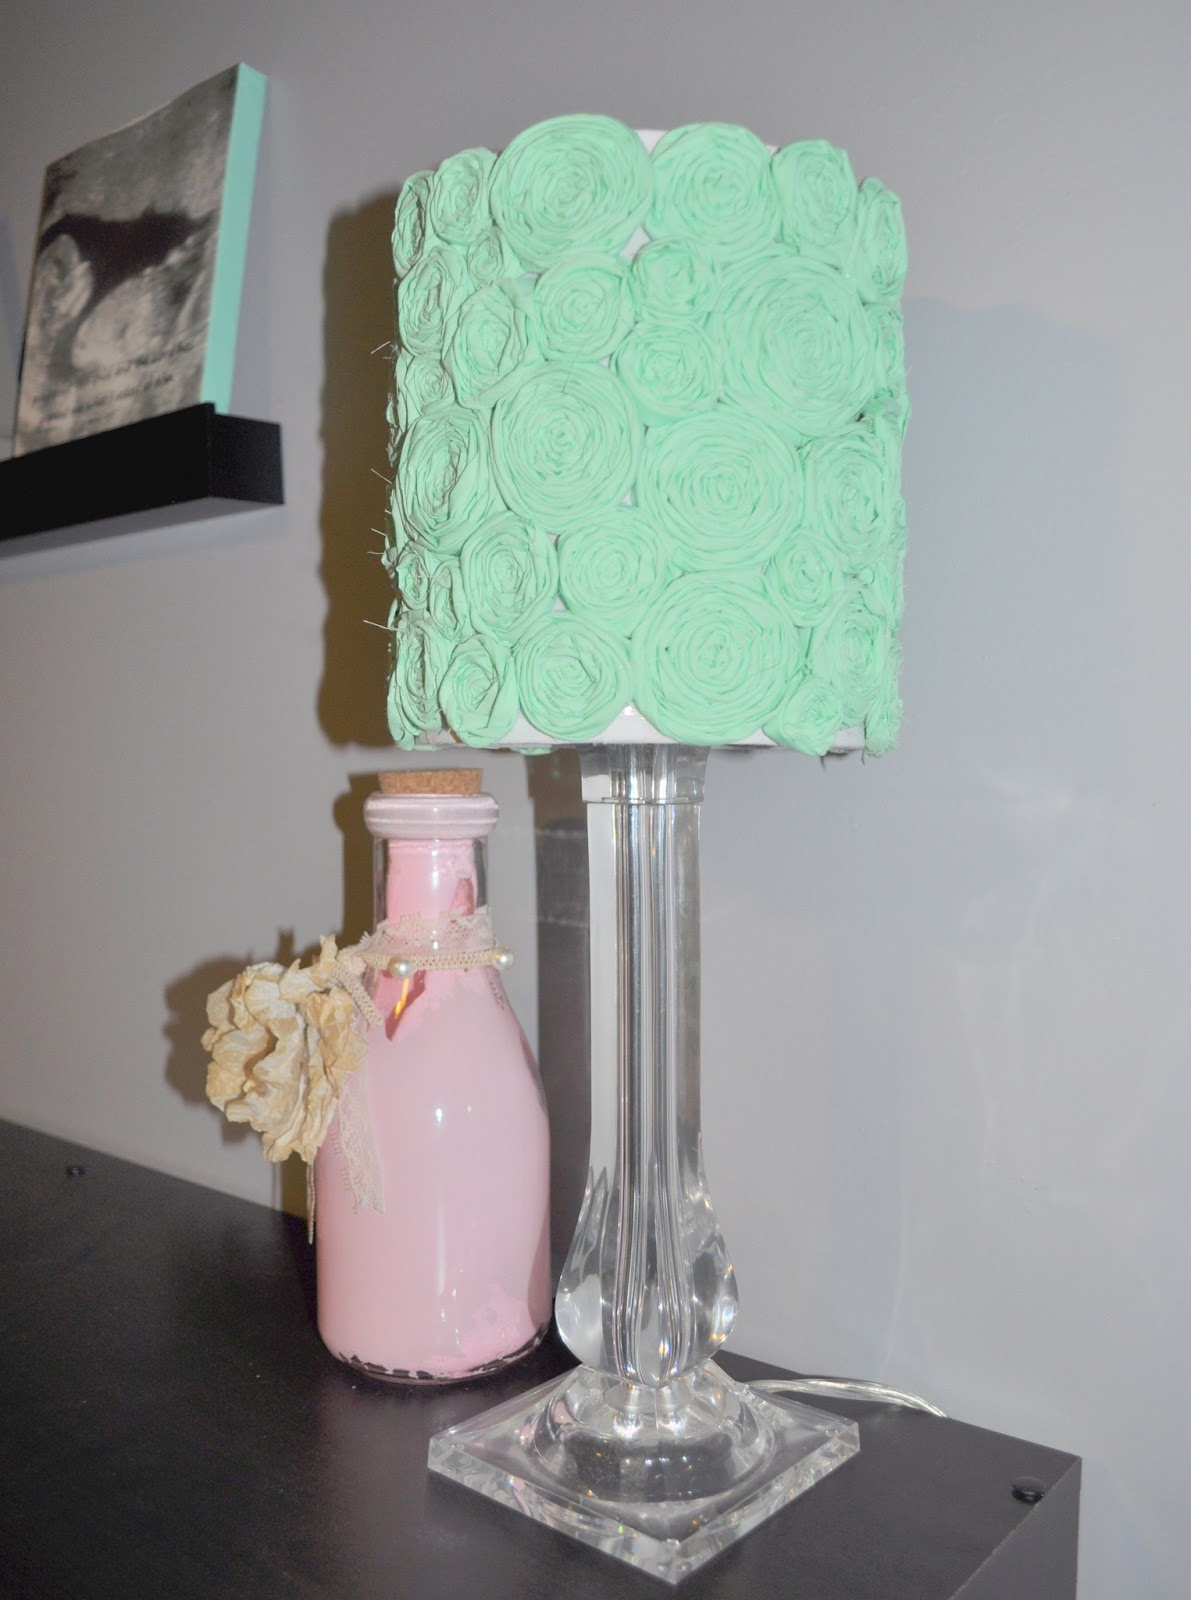 For lauren and lauren diy flower lamp shade - Diy lamp shade ...